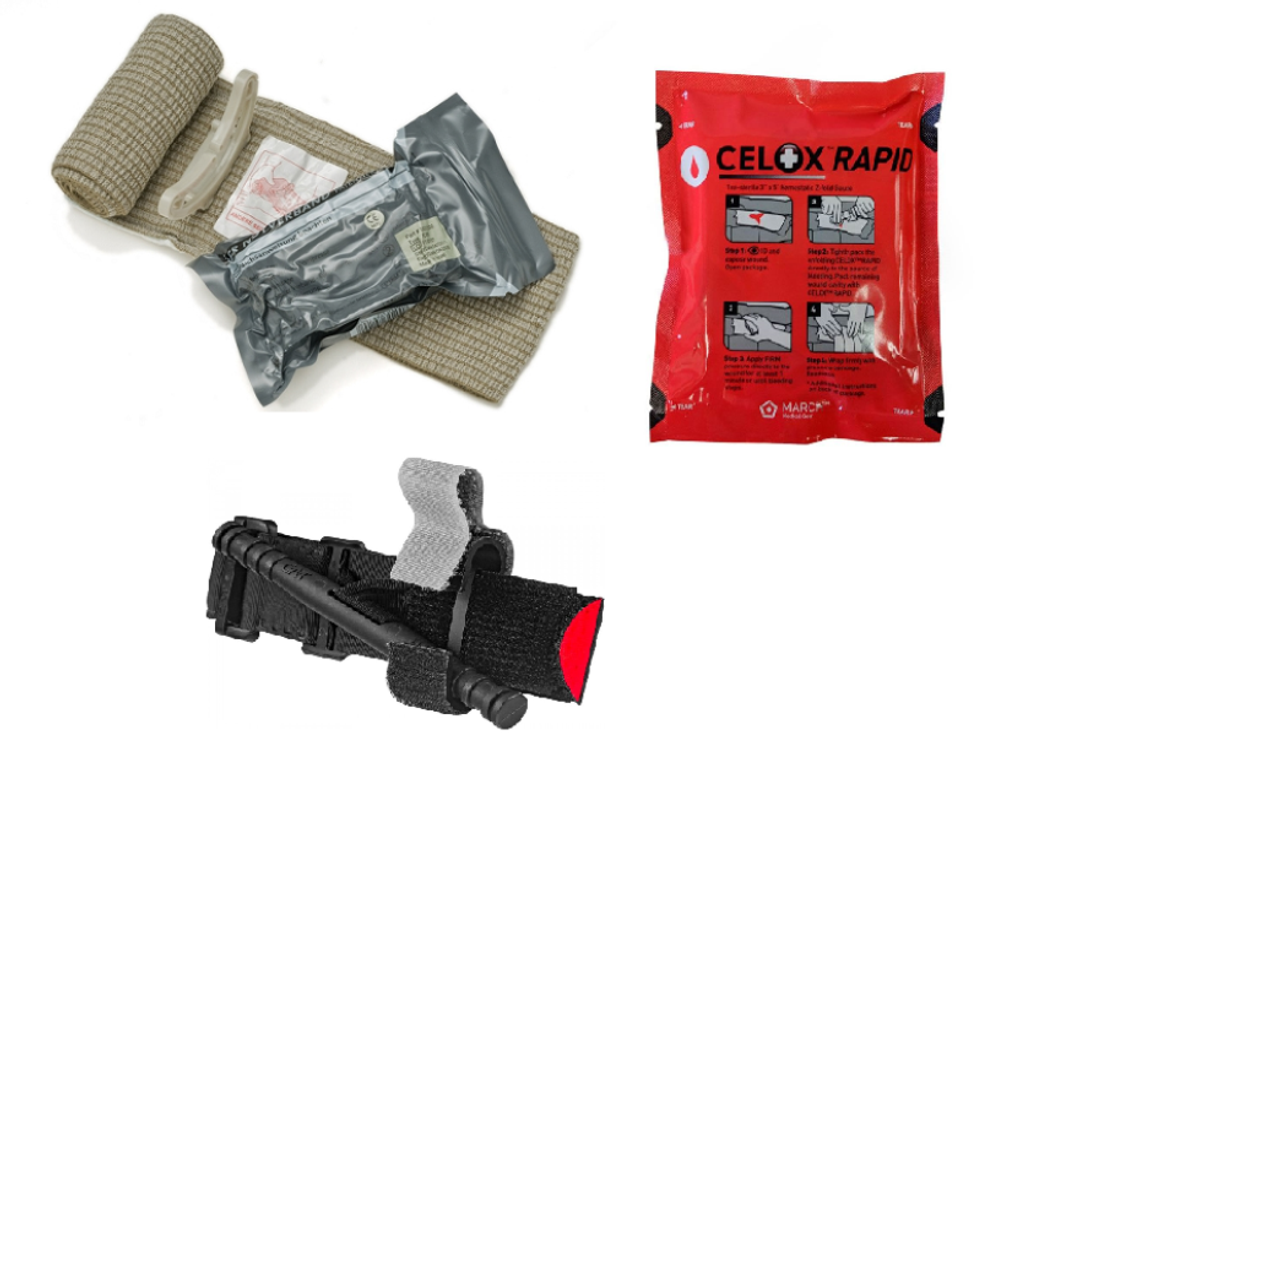 Every Day Carry (EDC) Life Saver, CAT Tourniquet, Israeli Bandage and Celox  Rapid Pack